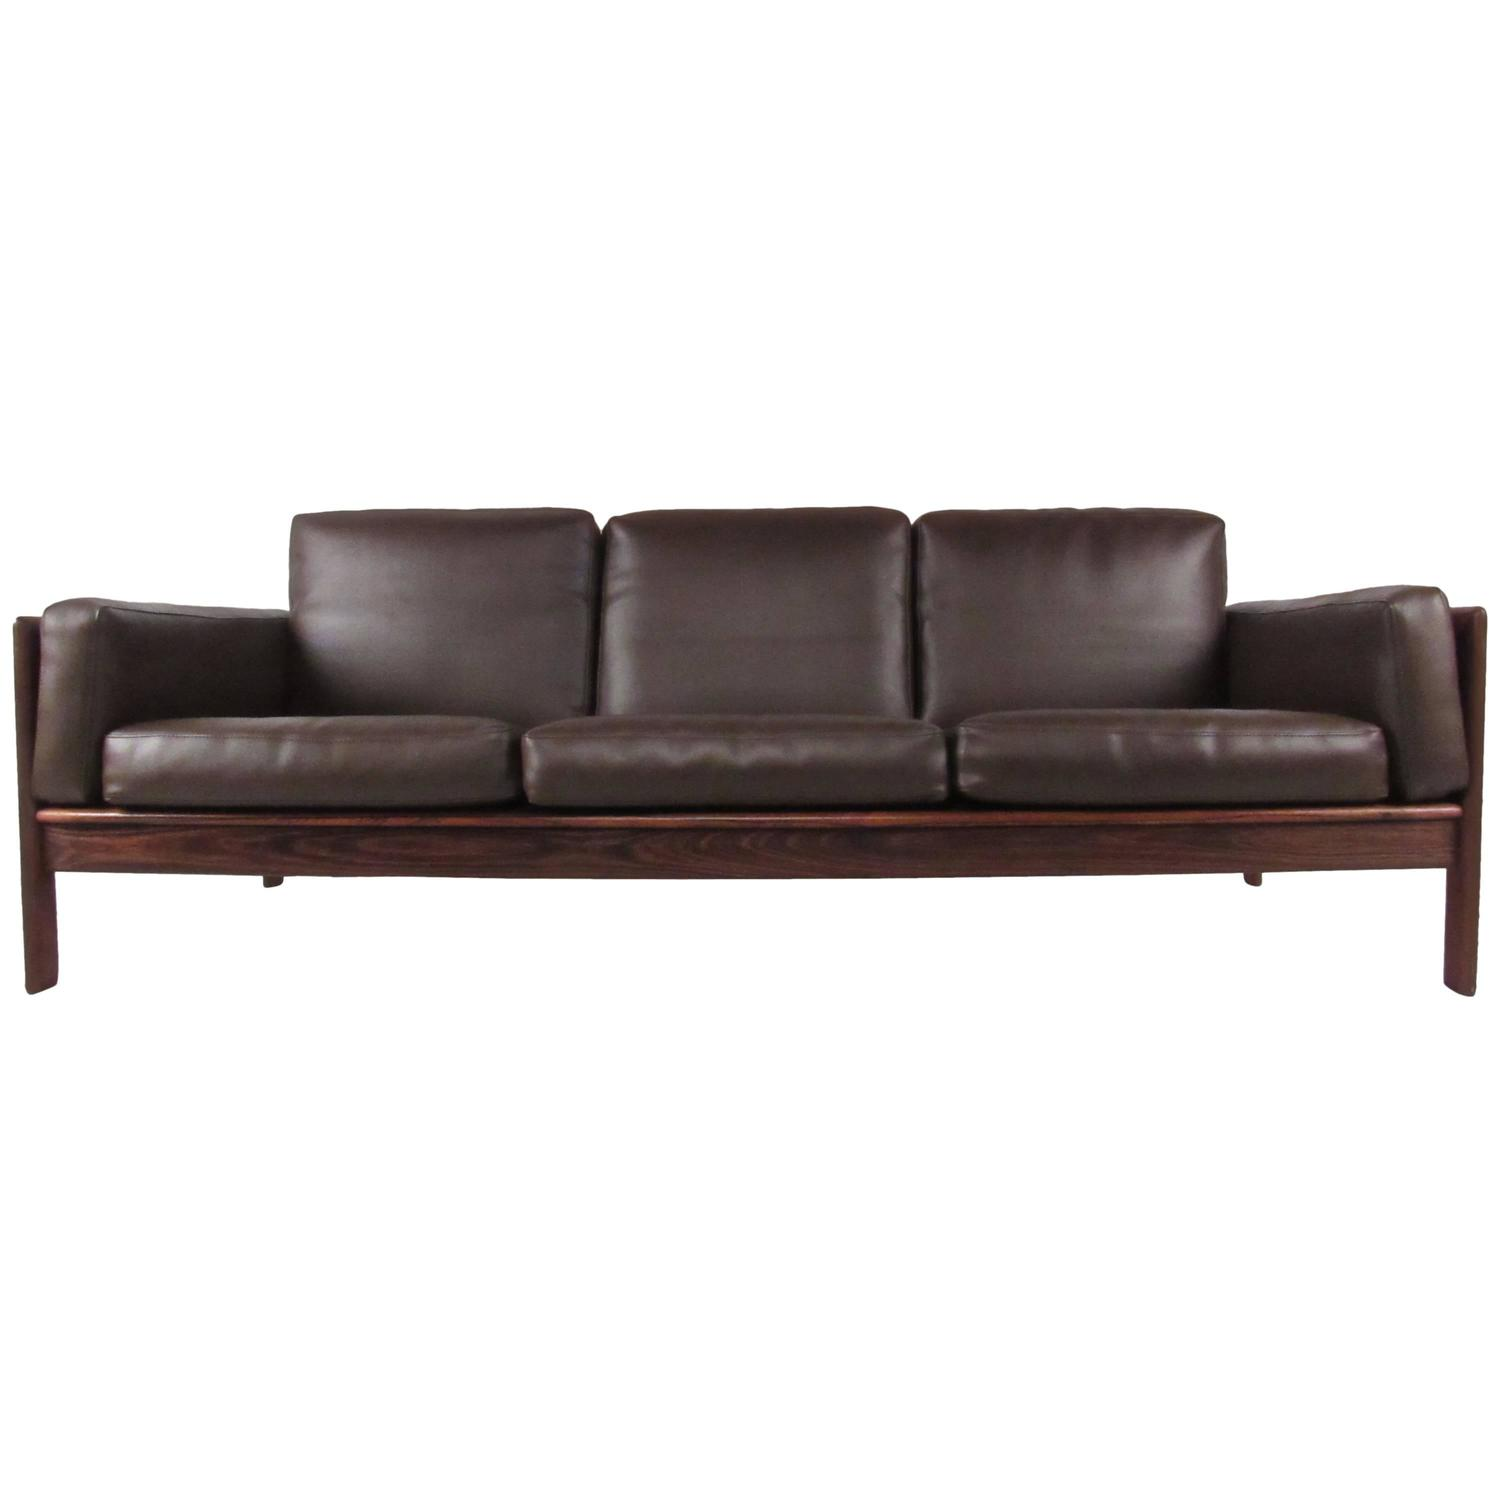 Stylish Mid Century Rosewood Sofa By Komfort